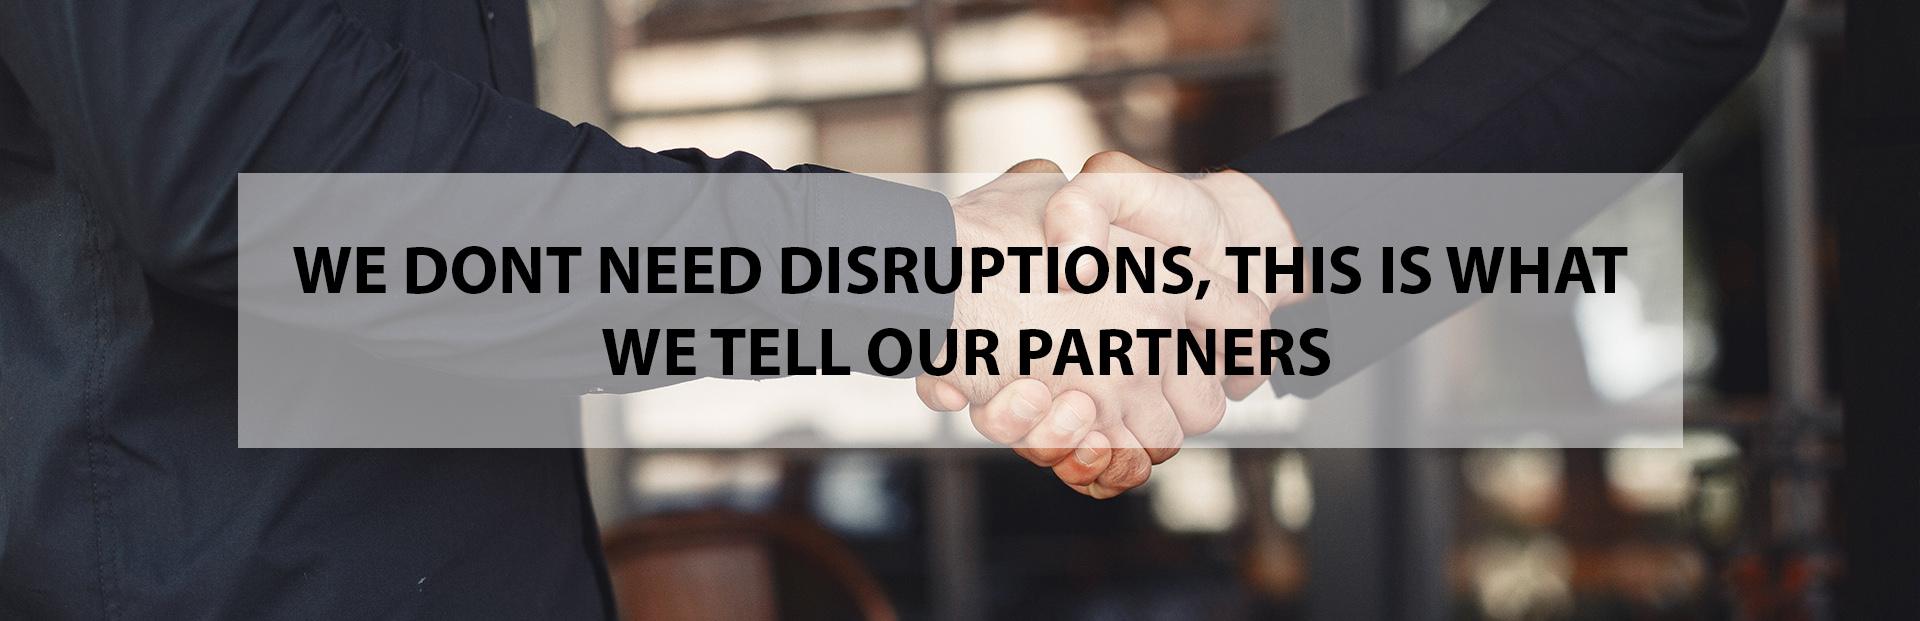 We don't need disruptions, this is what we tell our partners